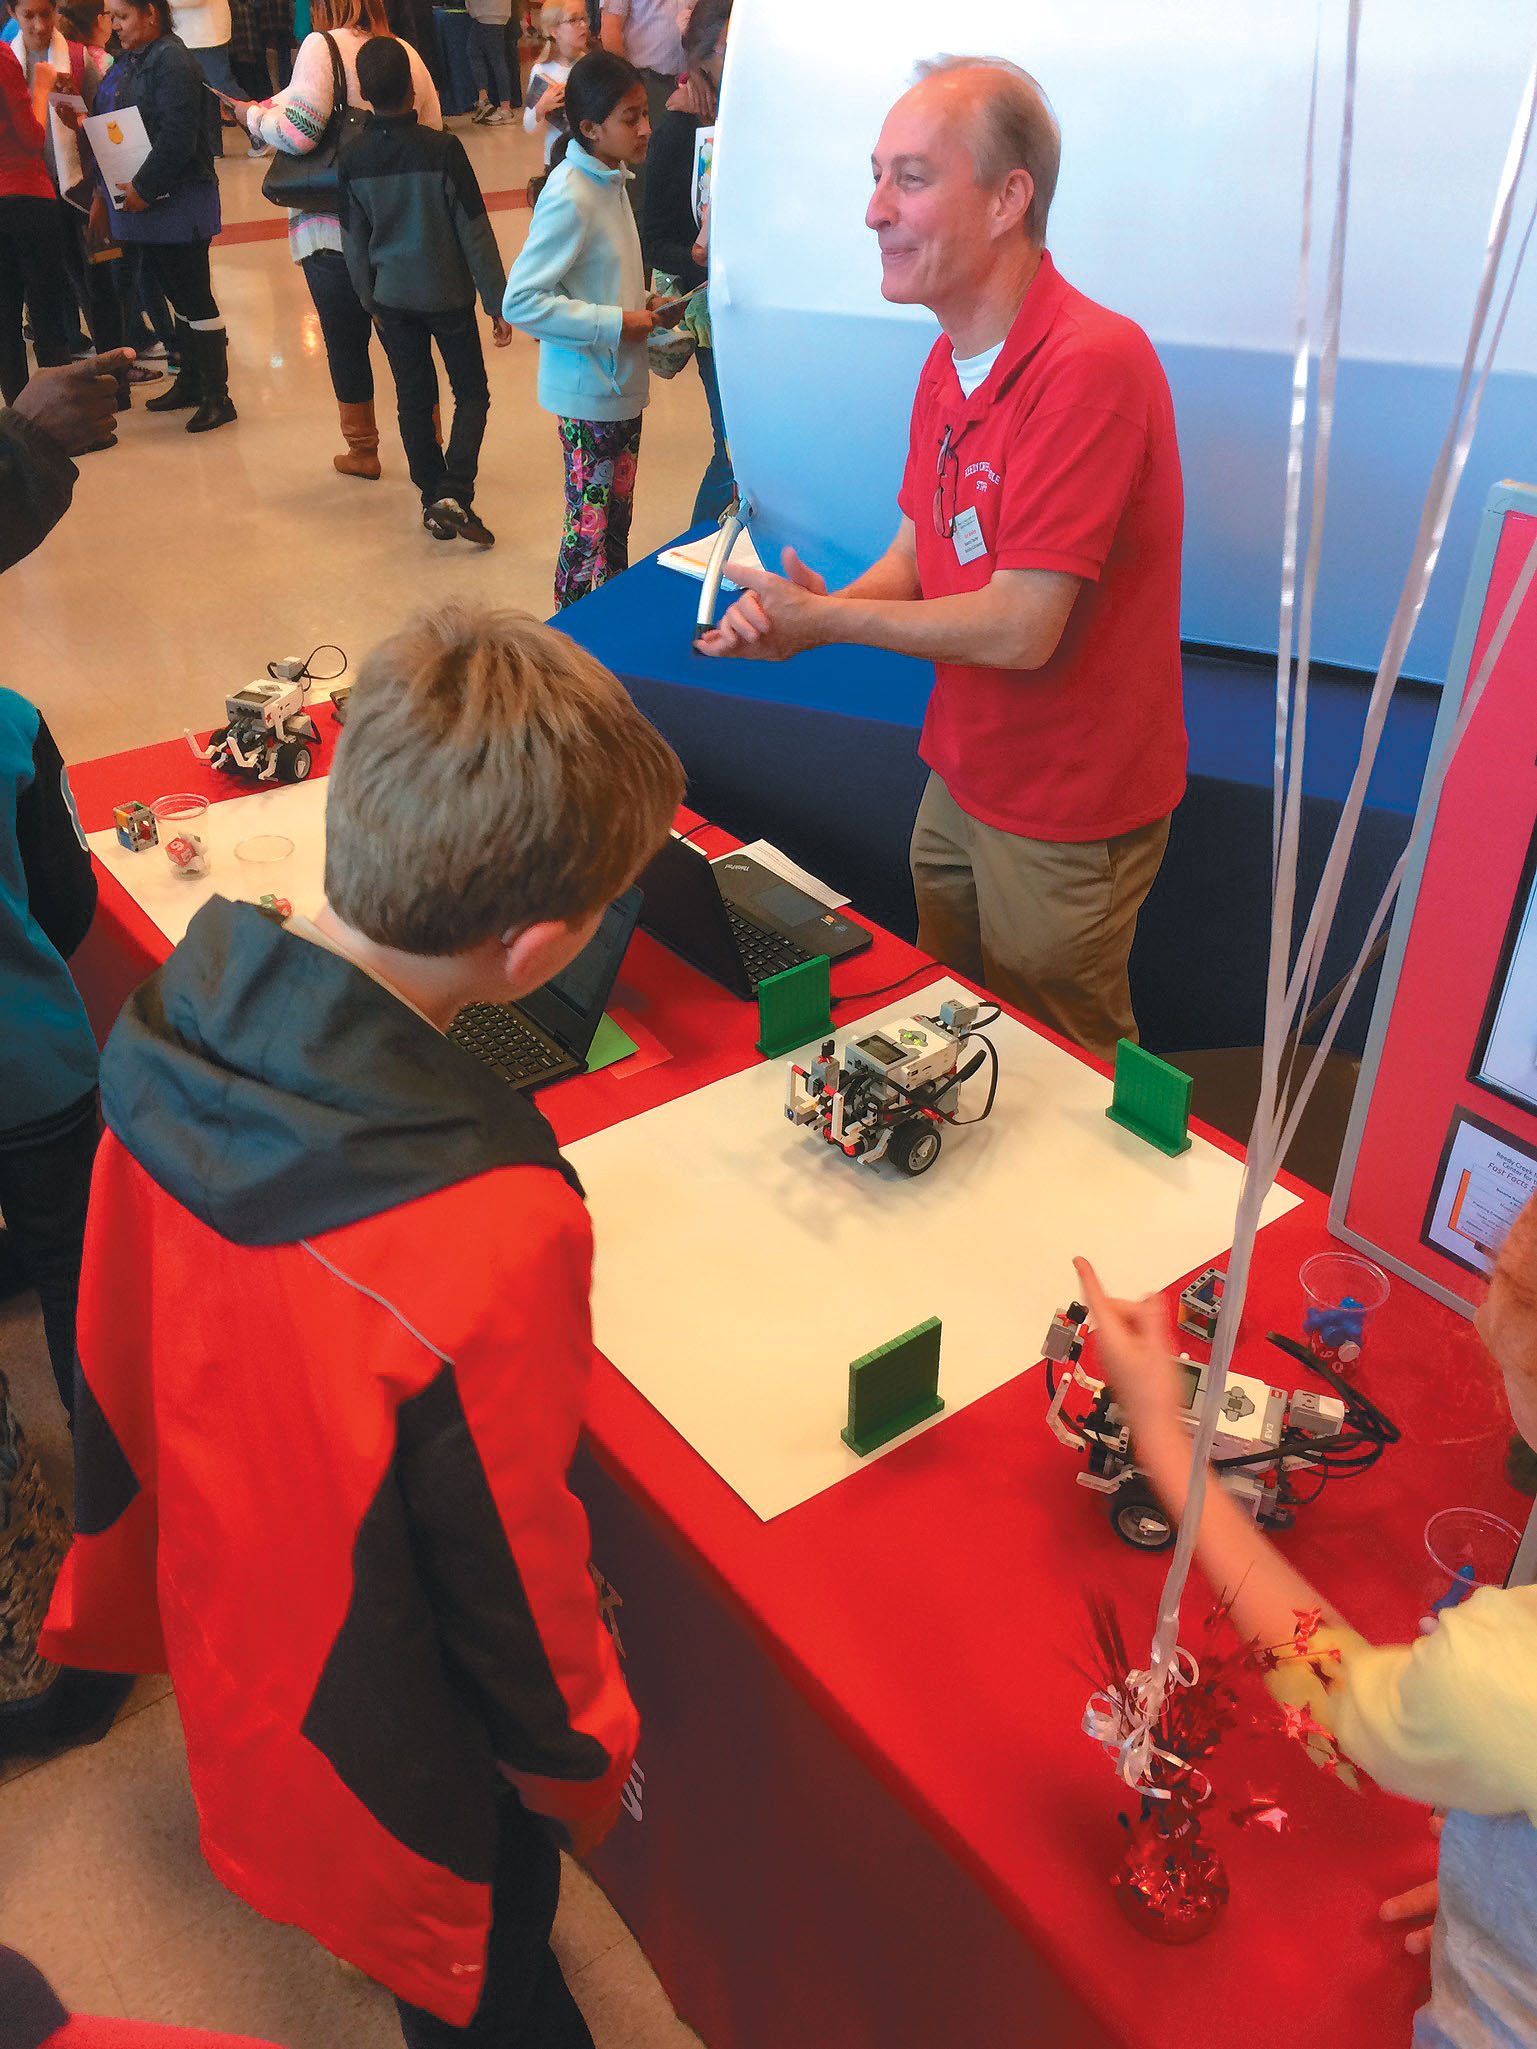 reedy creek magnet middle school mechatronics teacher ron boehm speaks to students at the magnet, early college, and year round schools fair at southeast raleigh magnet high school. Photo by thomas cooper/christine sachs